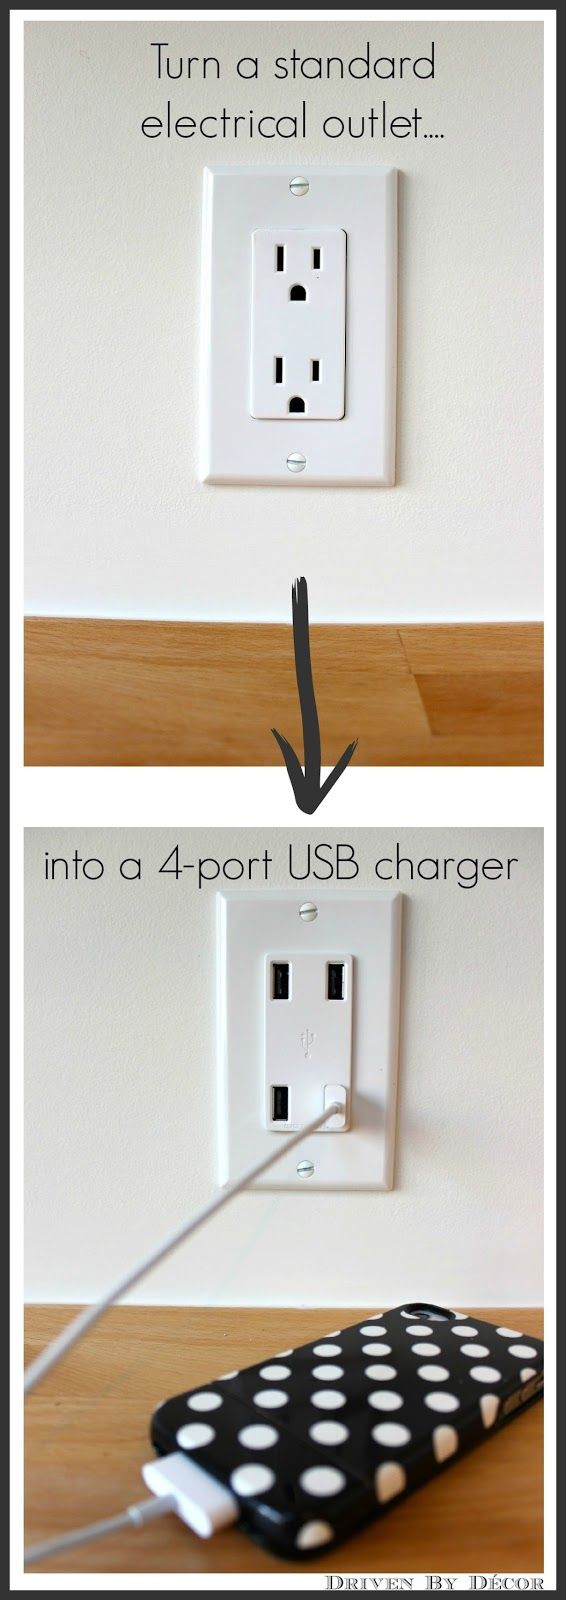 Check this out! Turn a standard outlet into a 4-port USB charger